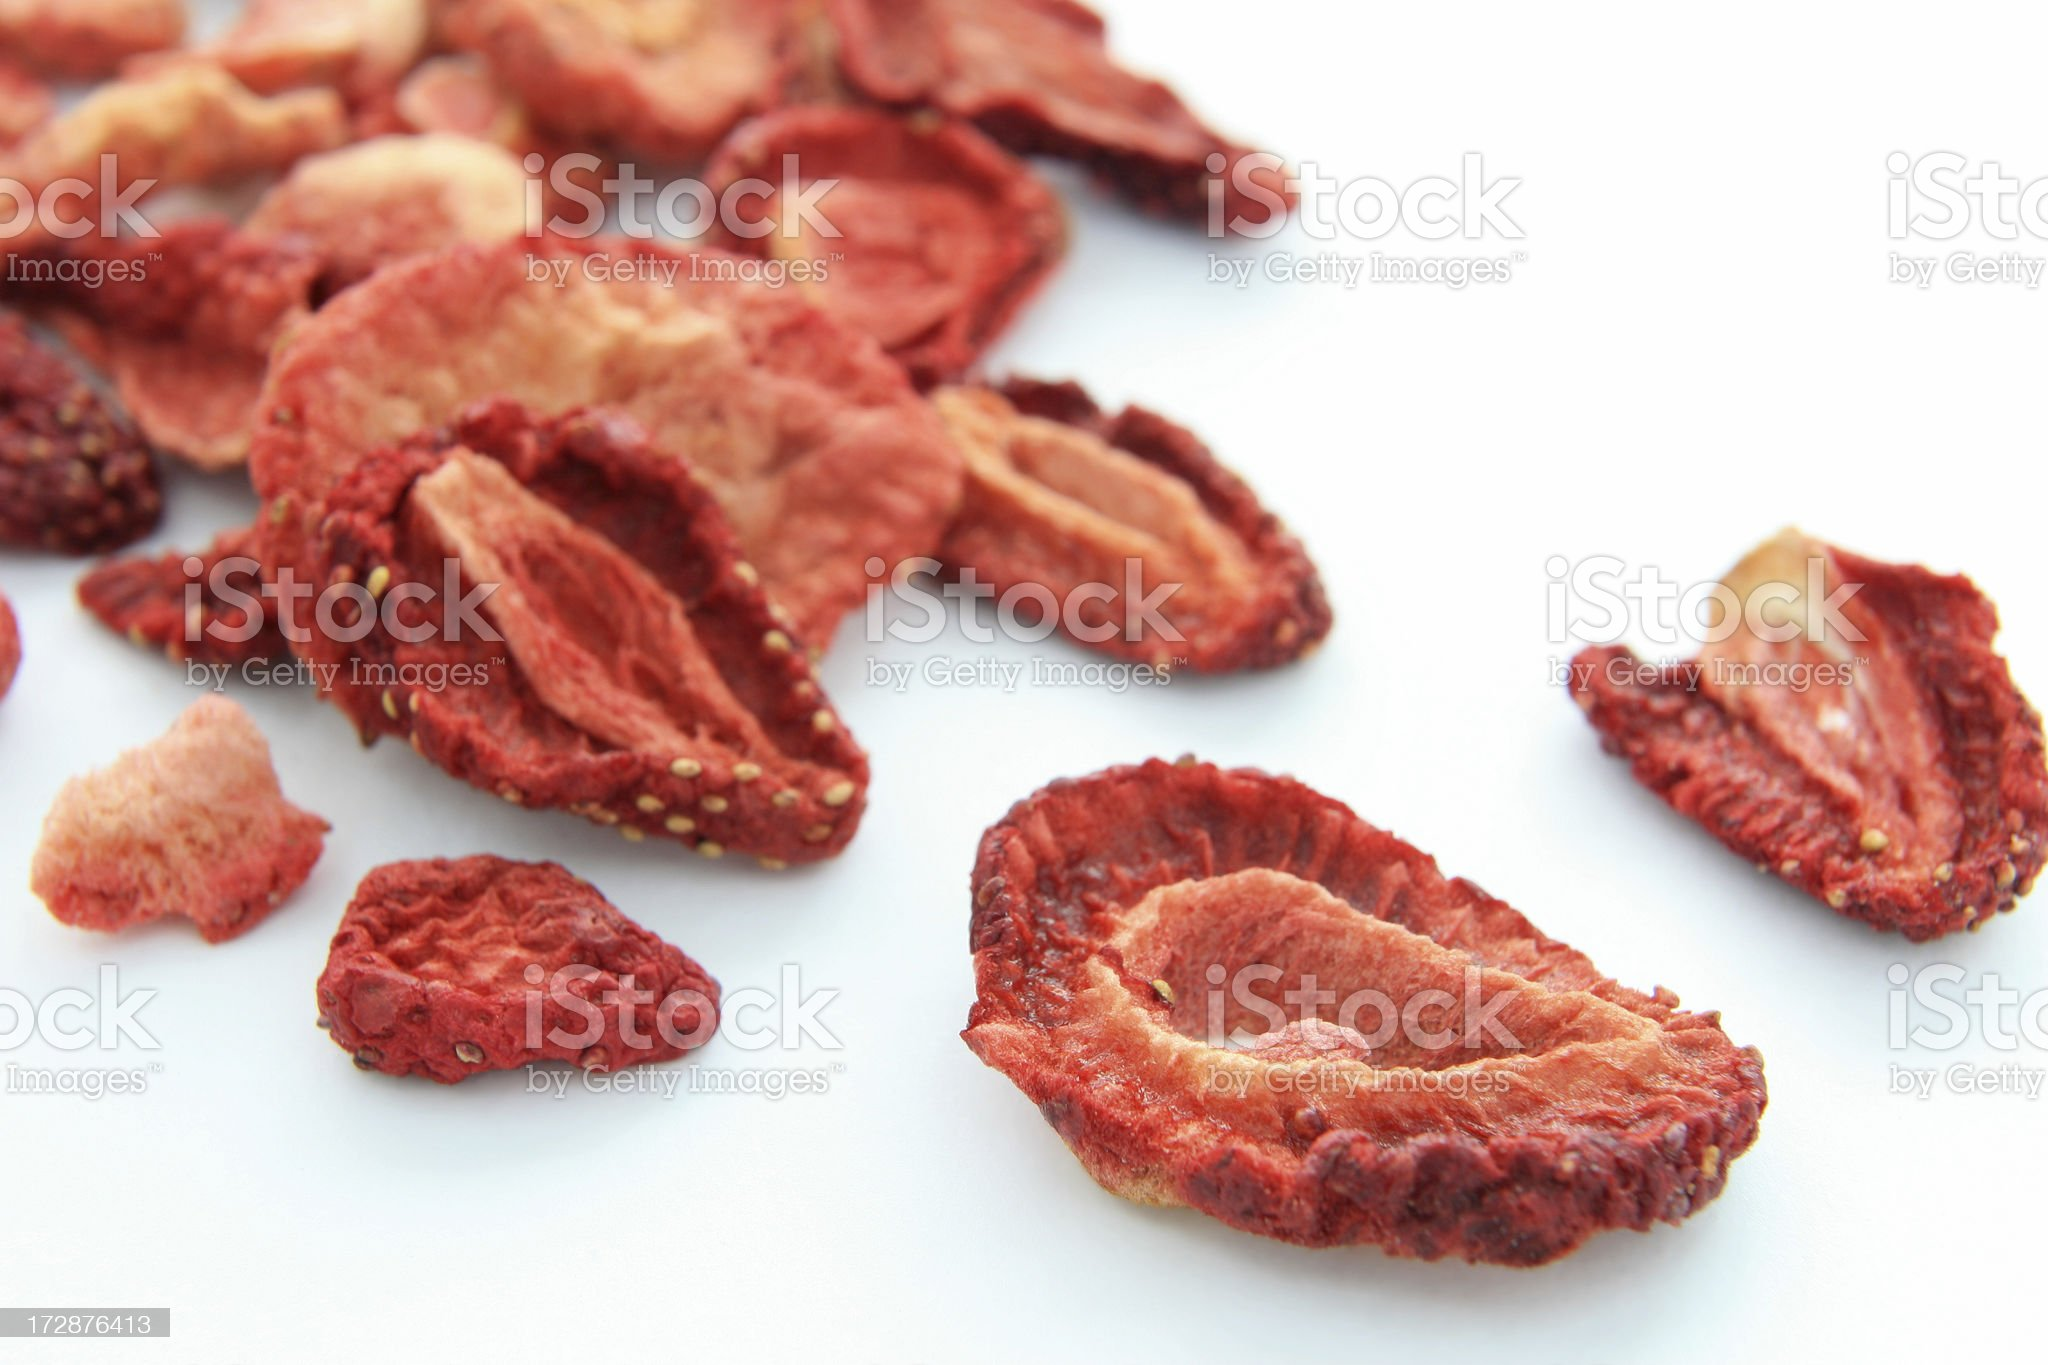 Dried srawberries. royalty-free stock photo